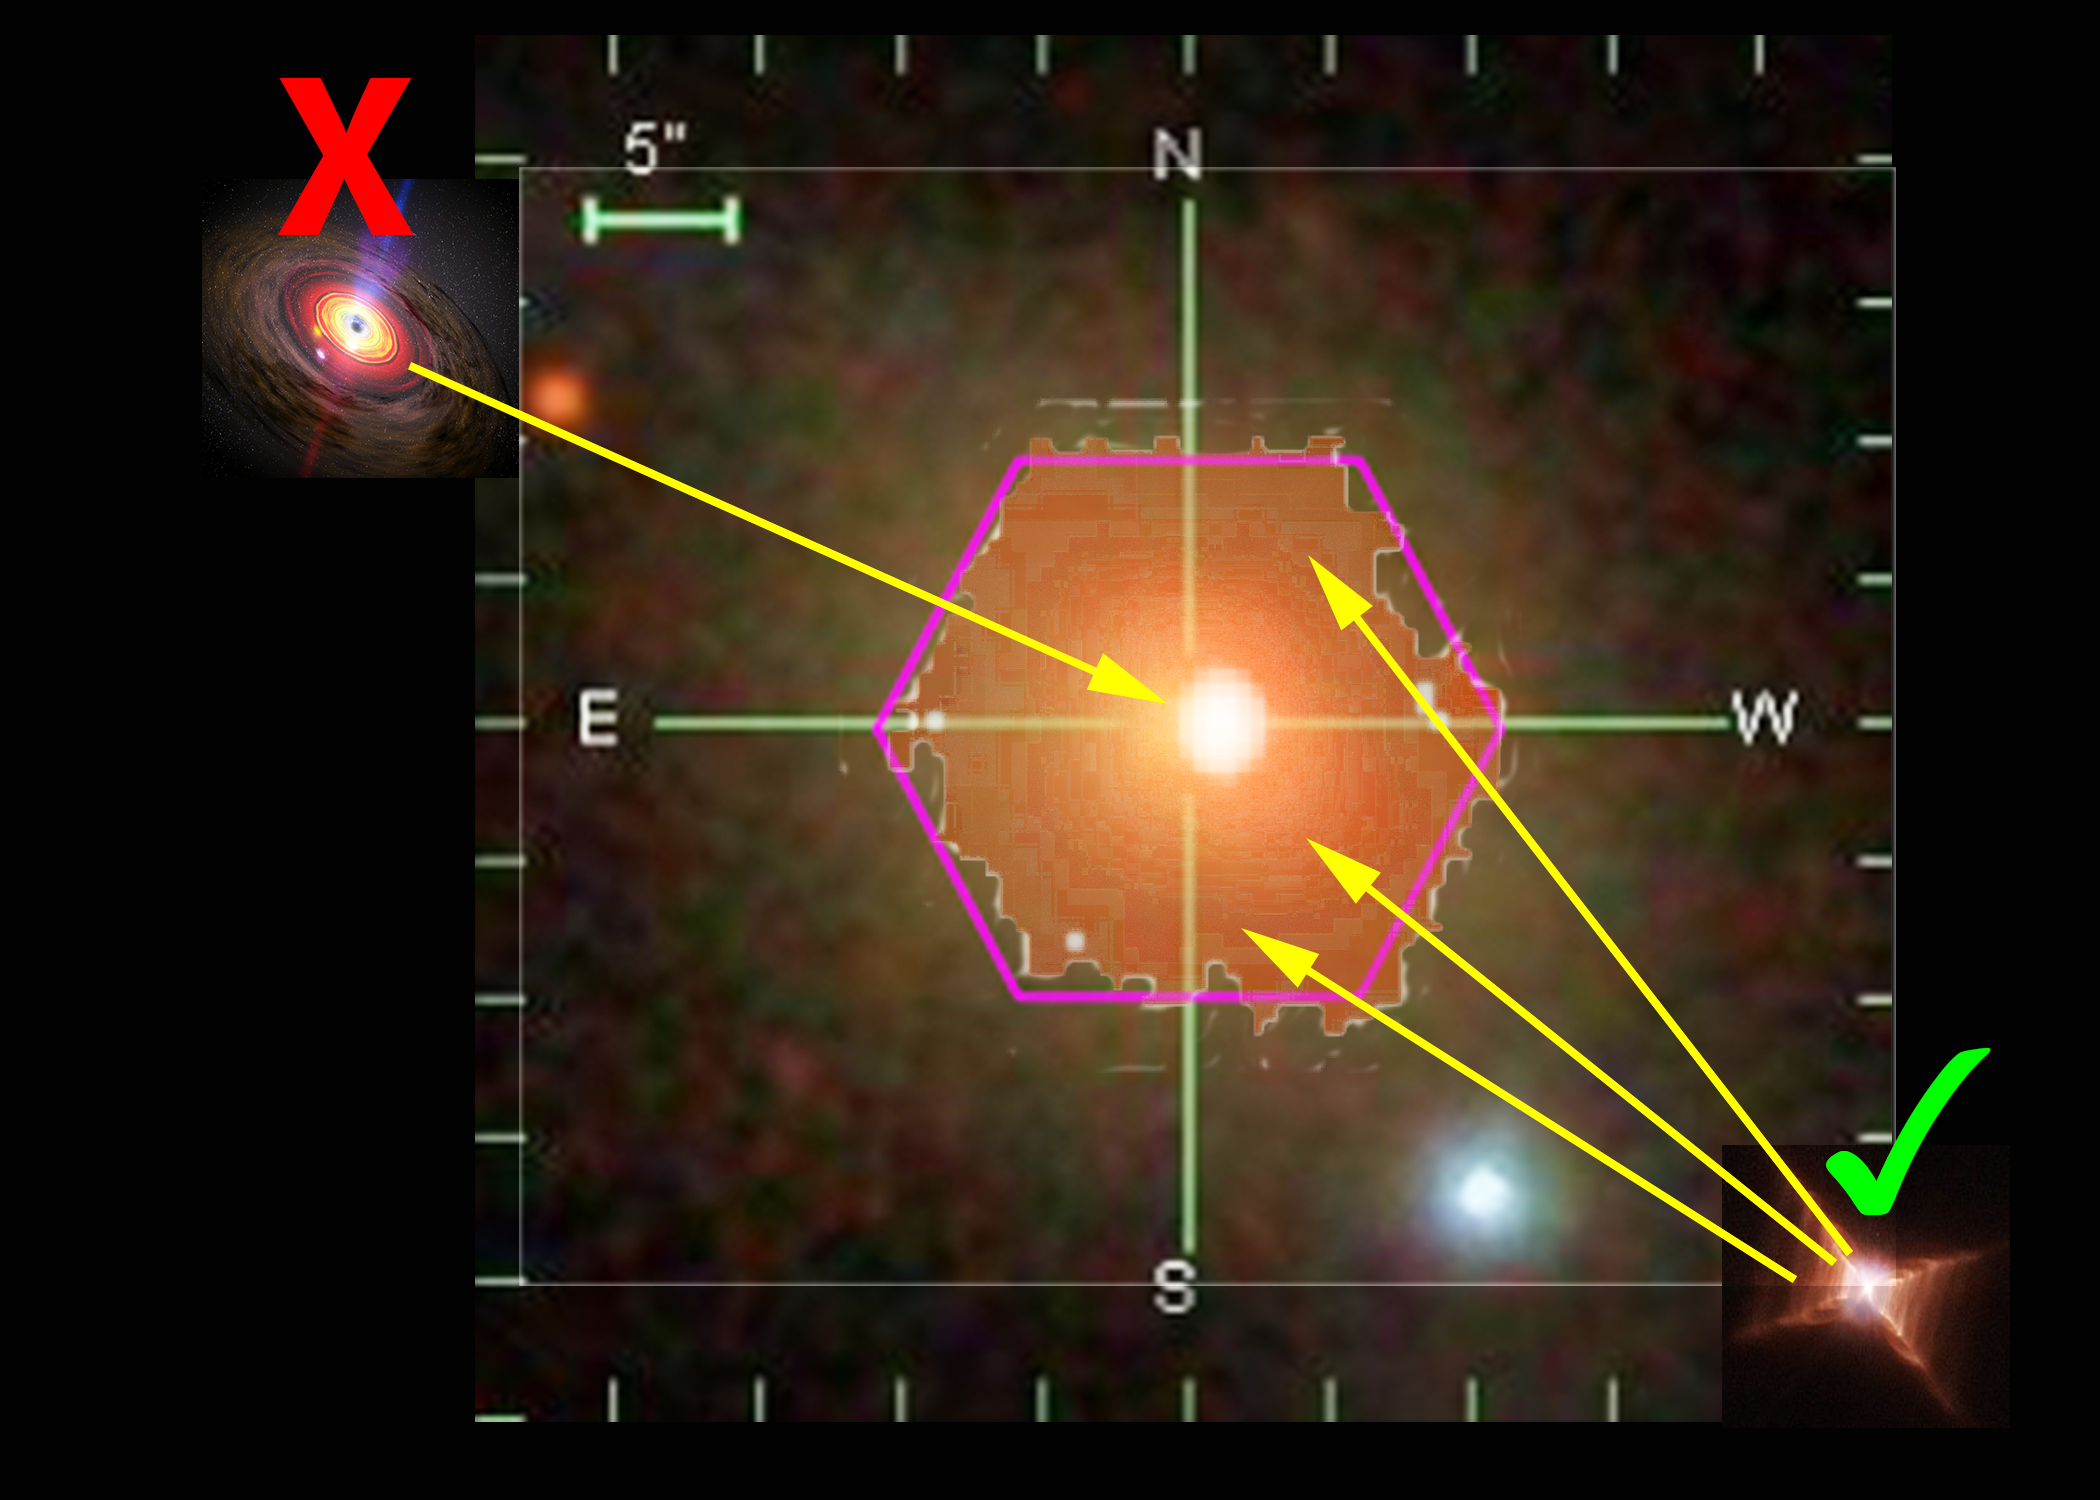 This image shows SDSS observations of one of the LIER galaxies used in this study. The underlying image is from the SDSS and includes a scale bar. The pink hexagon shows the size of the MaNGA fiber optic bundle. The region inside the hexagon shows the newly-derived map of interstellar gas from MaNGA. The presence of the gas throughout the galaxy eliminates the black hole explanation (pictured at the top left) and favors the white dwarf explanation (bottom right).  Image Credit: Jennifer Johnson (The Ohio State University) and the SDSS Collaboration Black hole: NASA/Dana Berry/SkyWorks Animation White dwarf: NASA/JPL (Raghvendra Sahai)